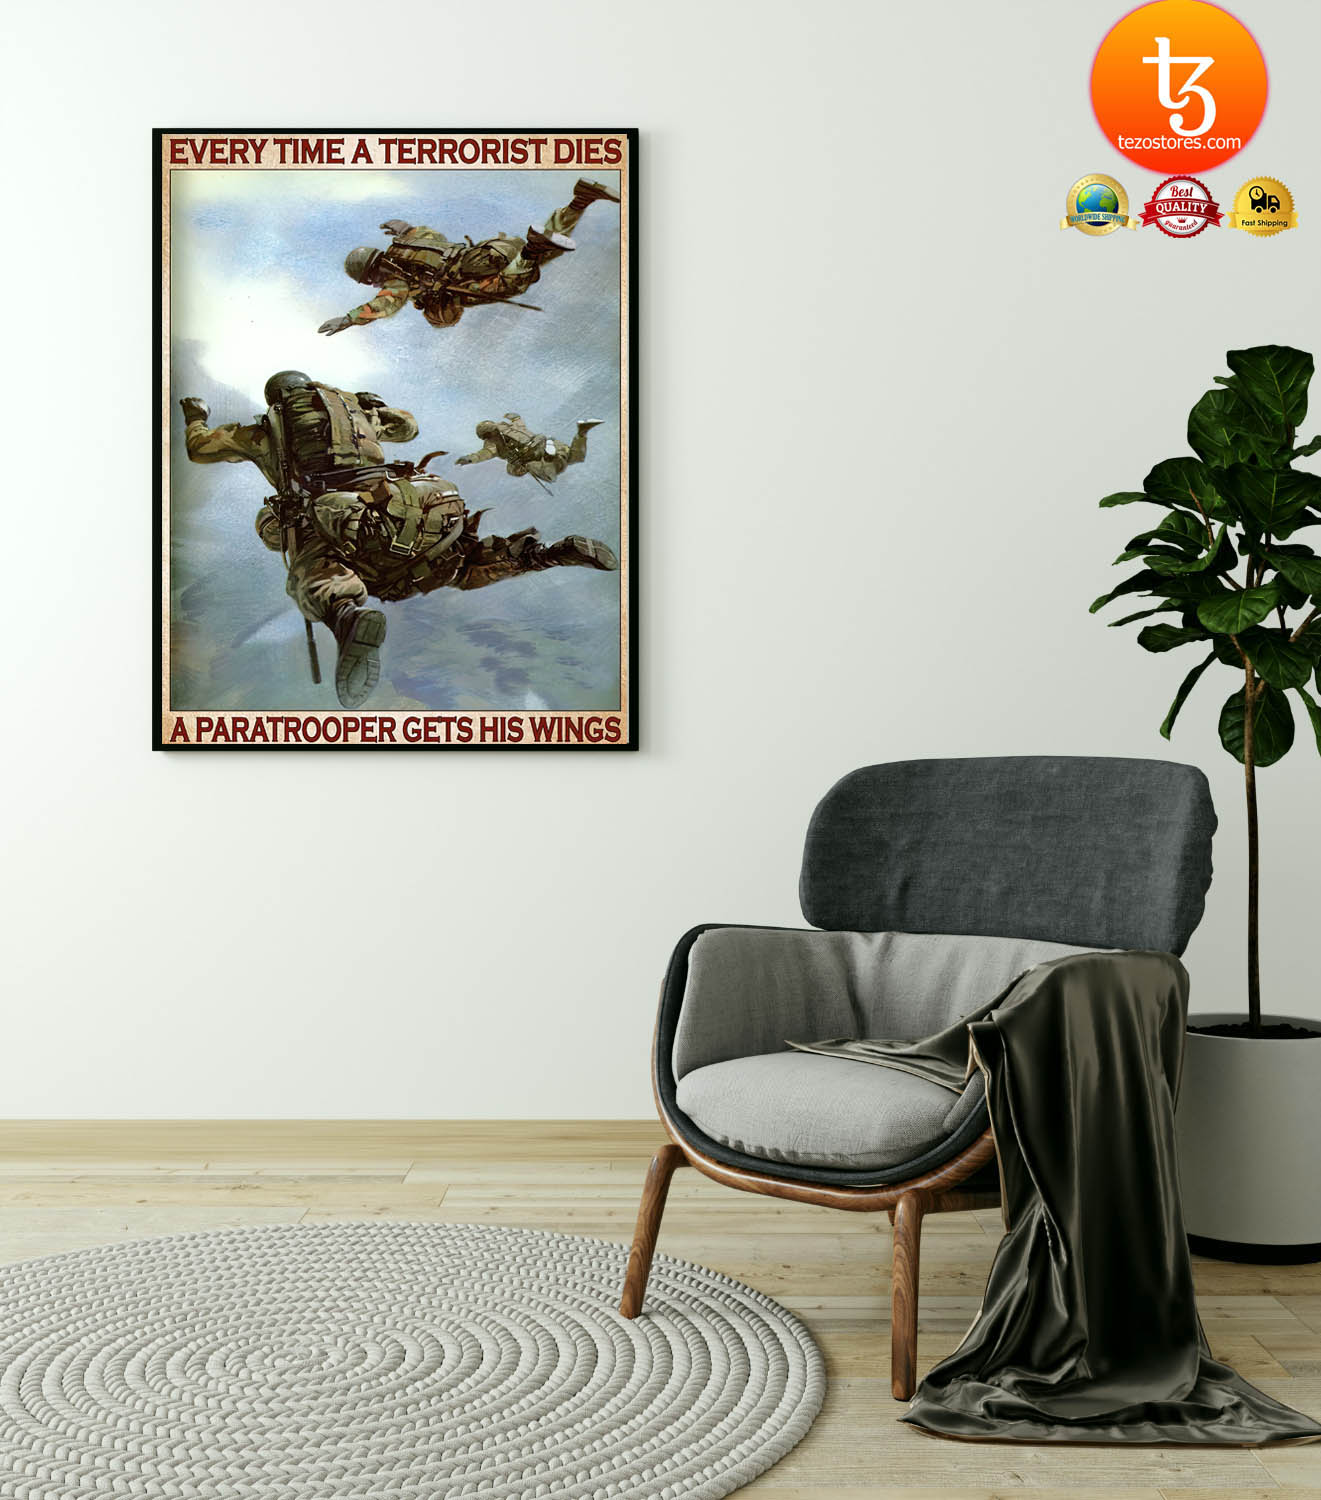 Every time a terrorist dies a paratrooper gets his wings poster 21